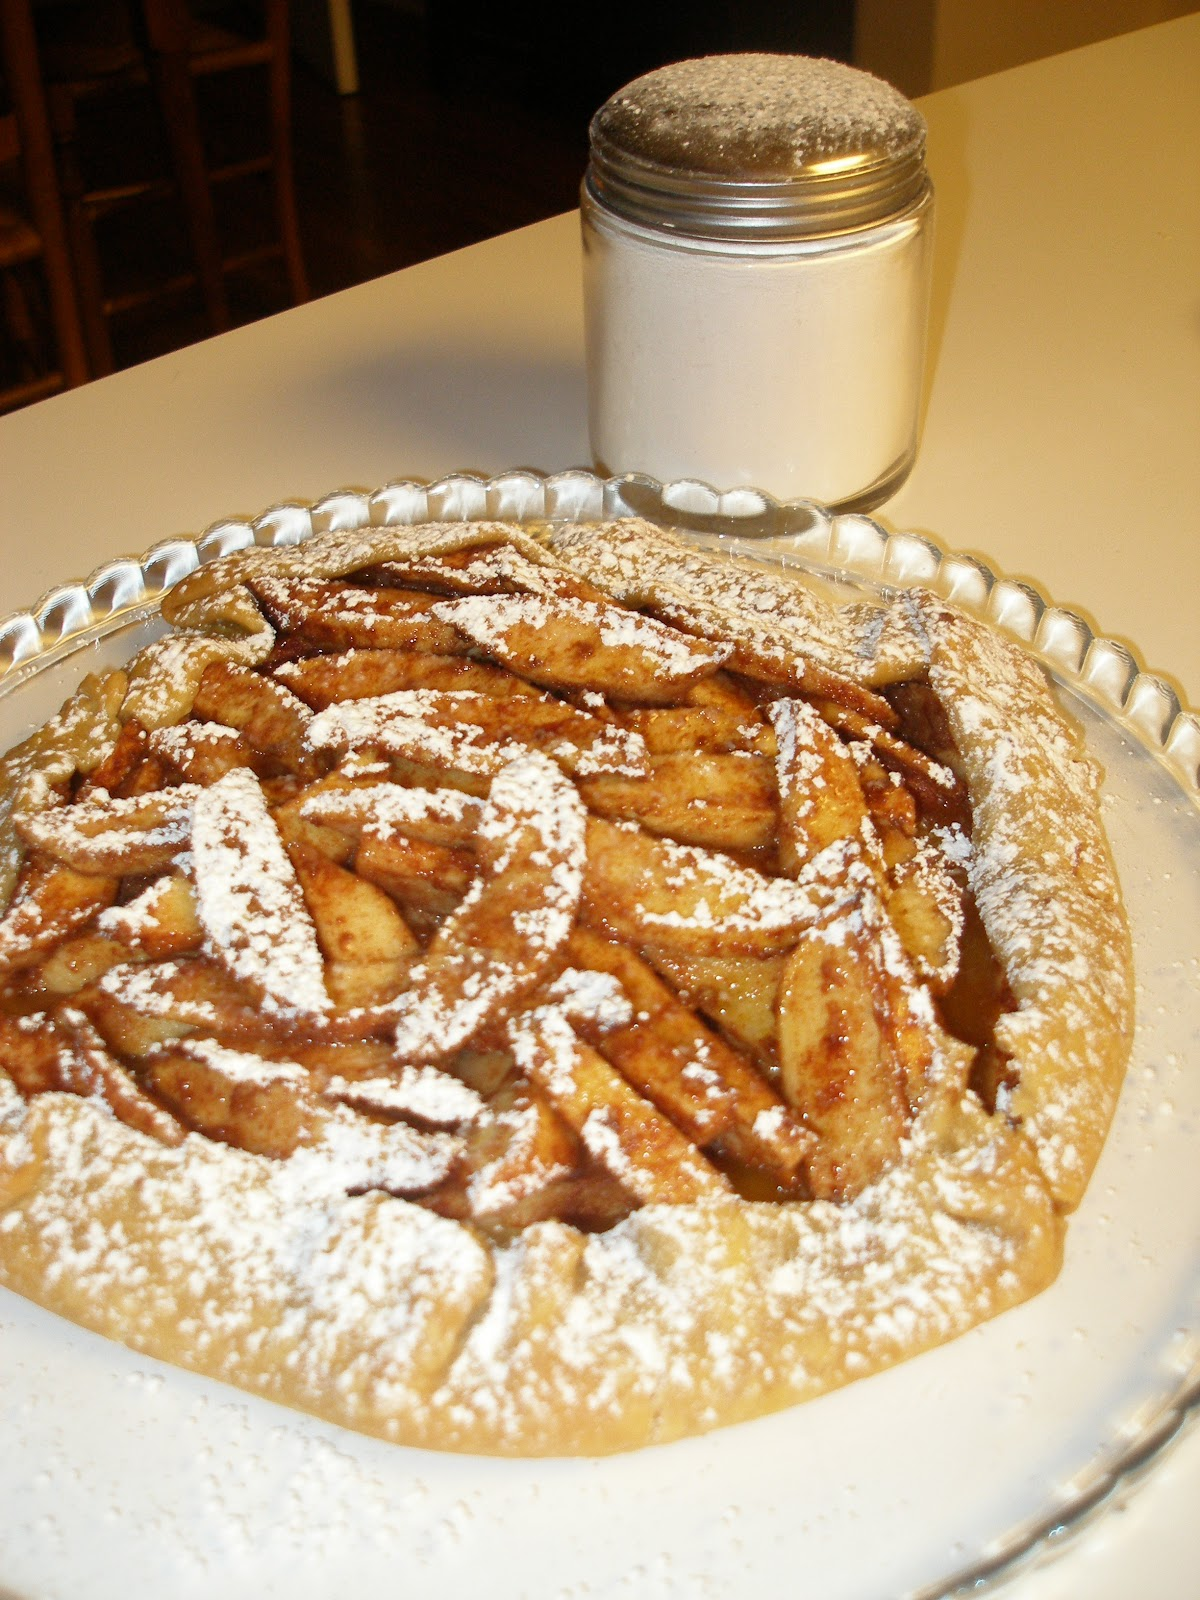 ... free form apple galette recipe this one uses refrigerated pie crust